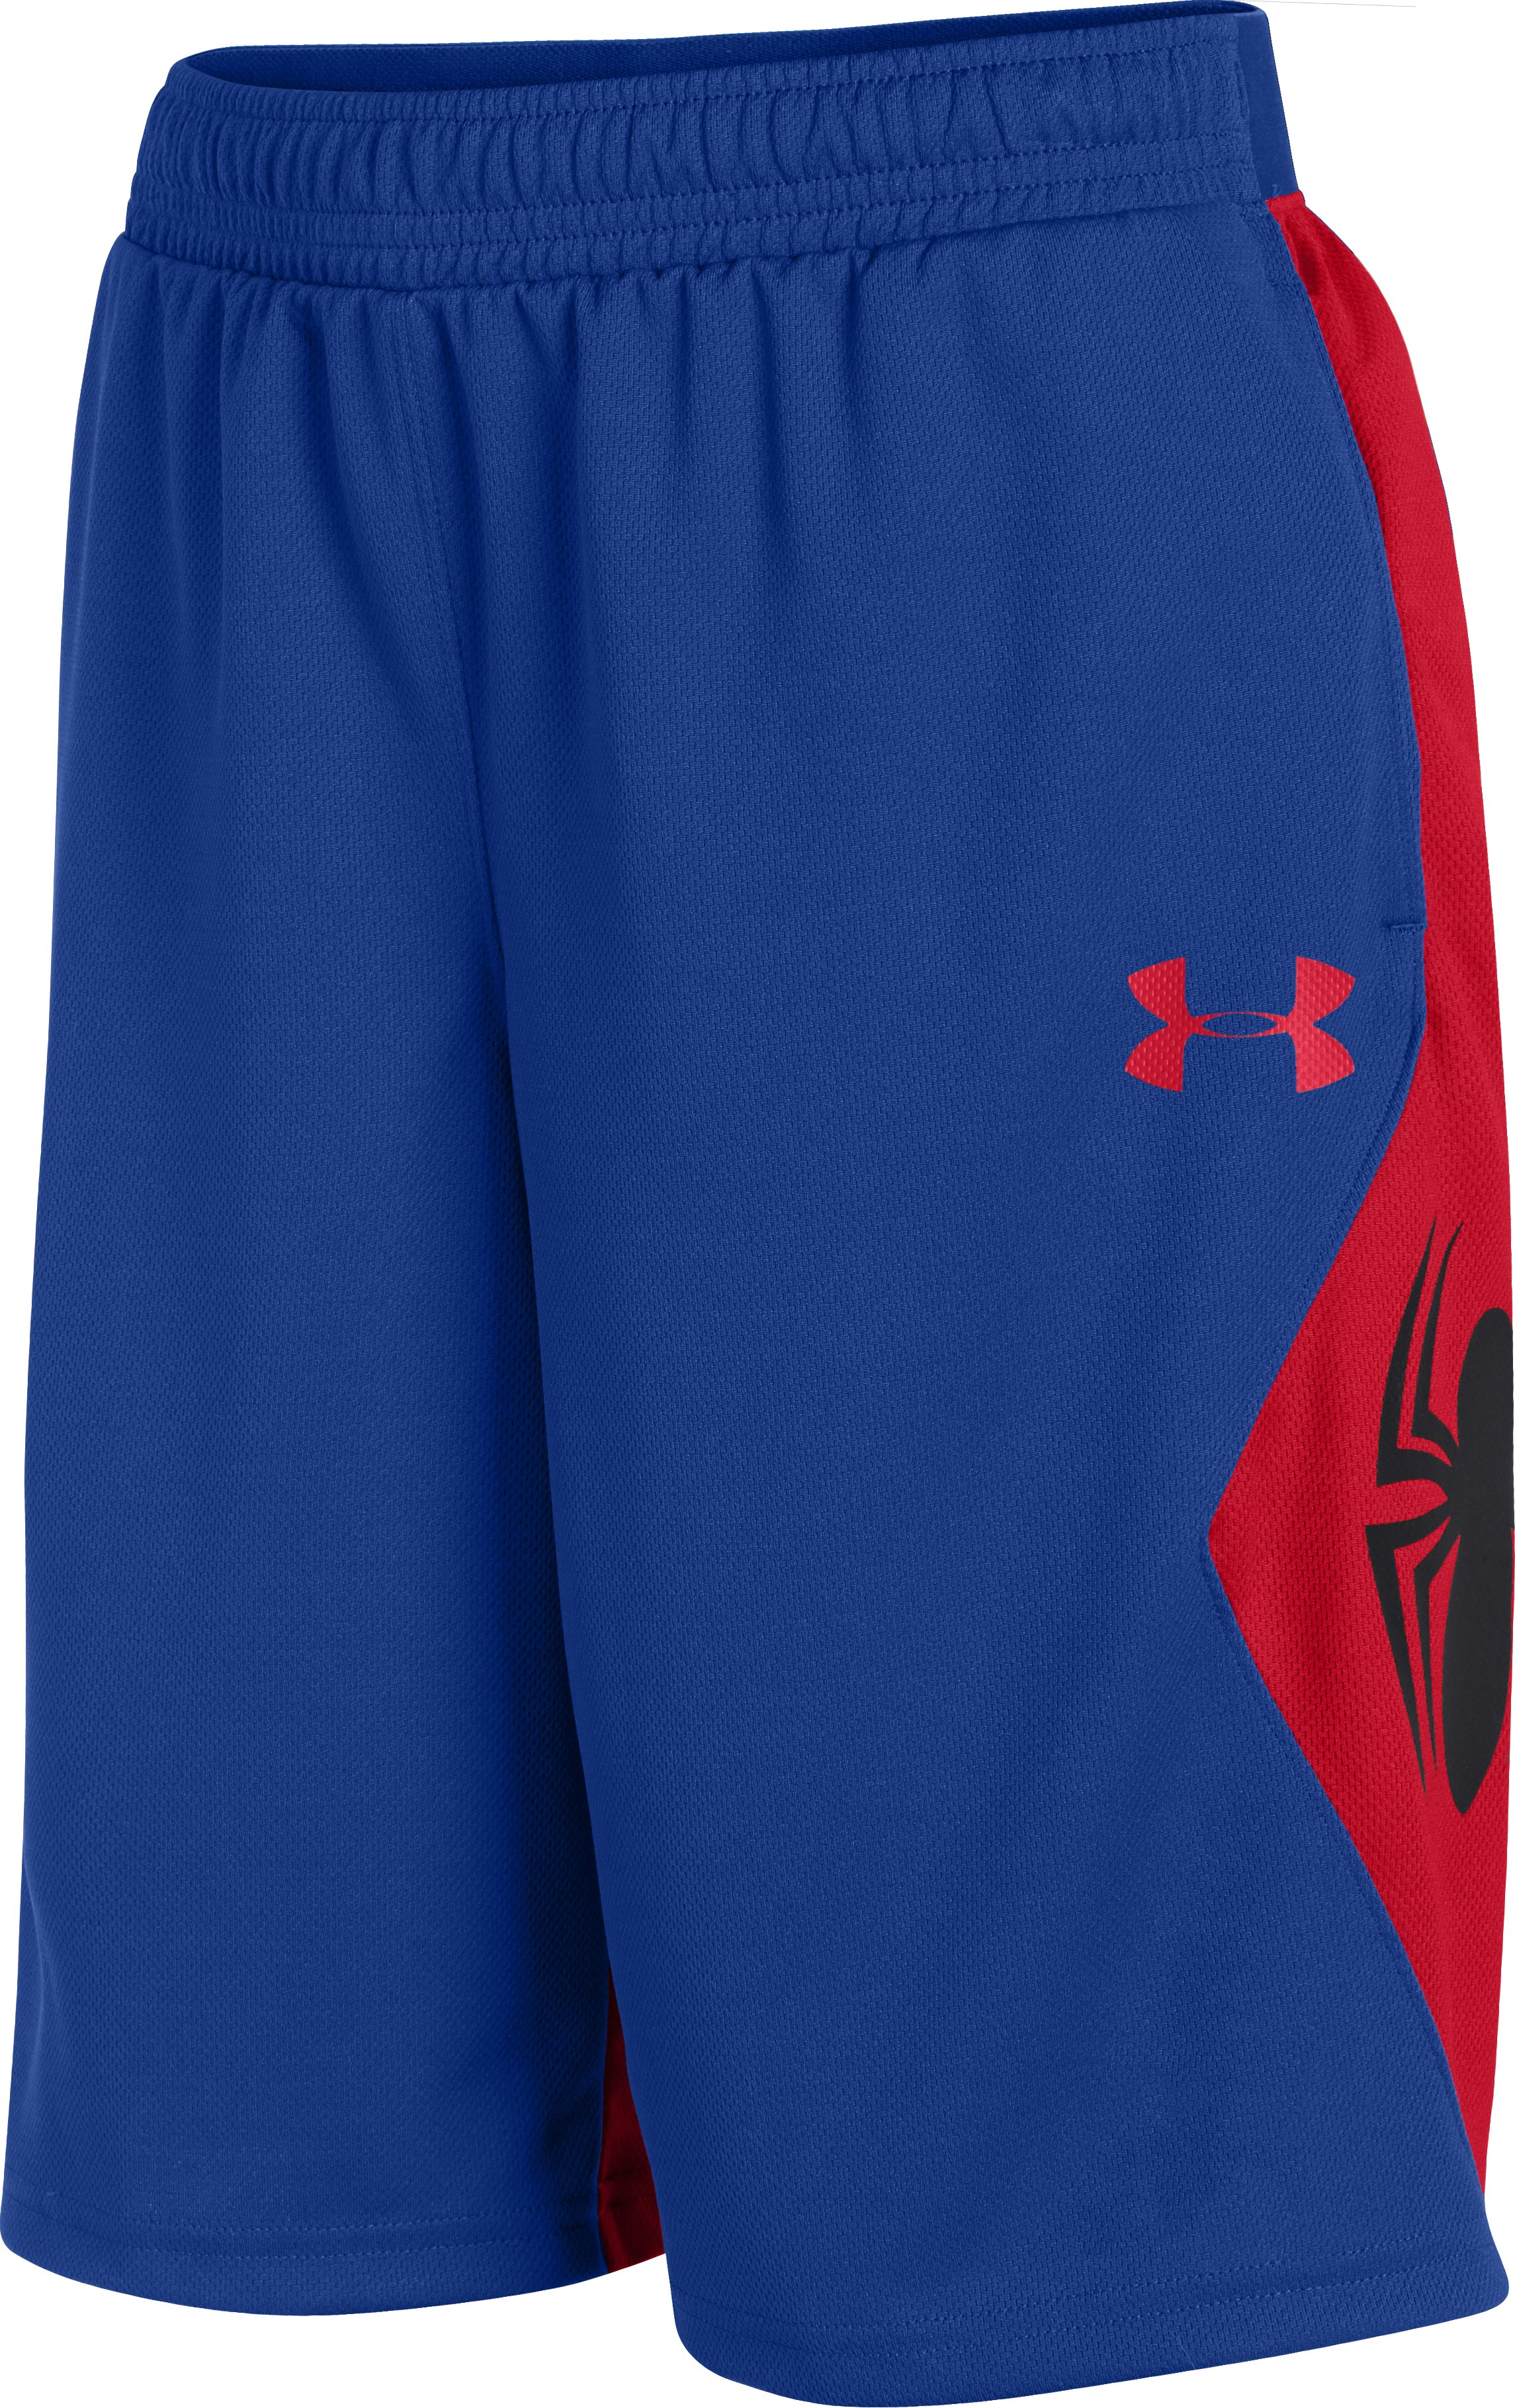 Boys' Under Armour® Hero Shorts, Royal